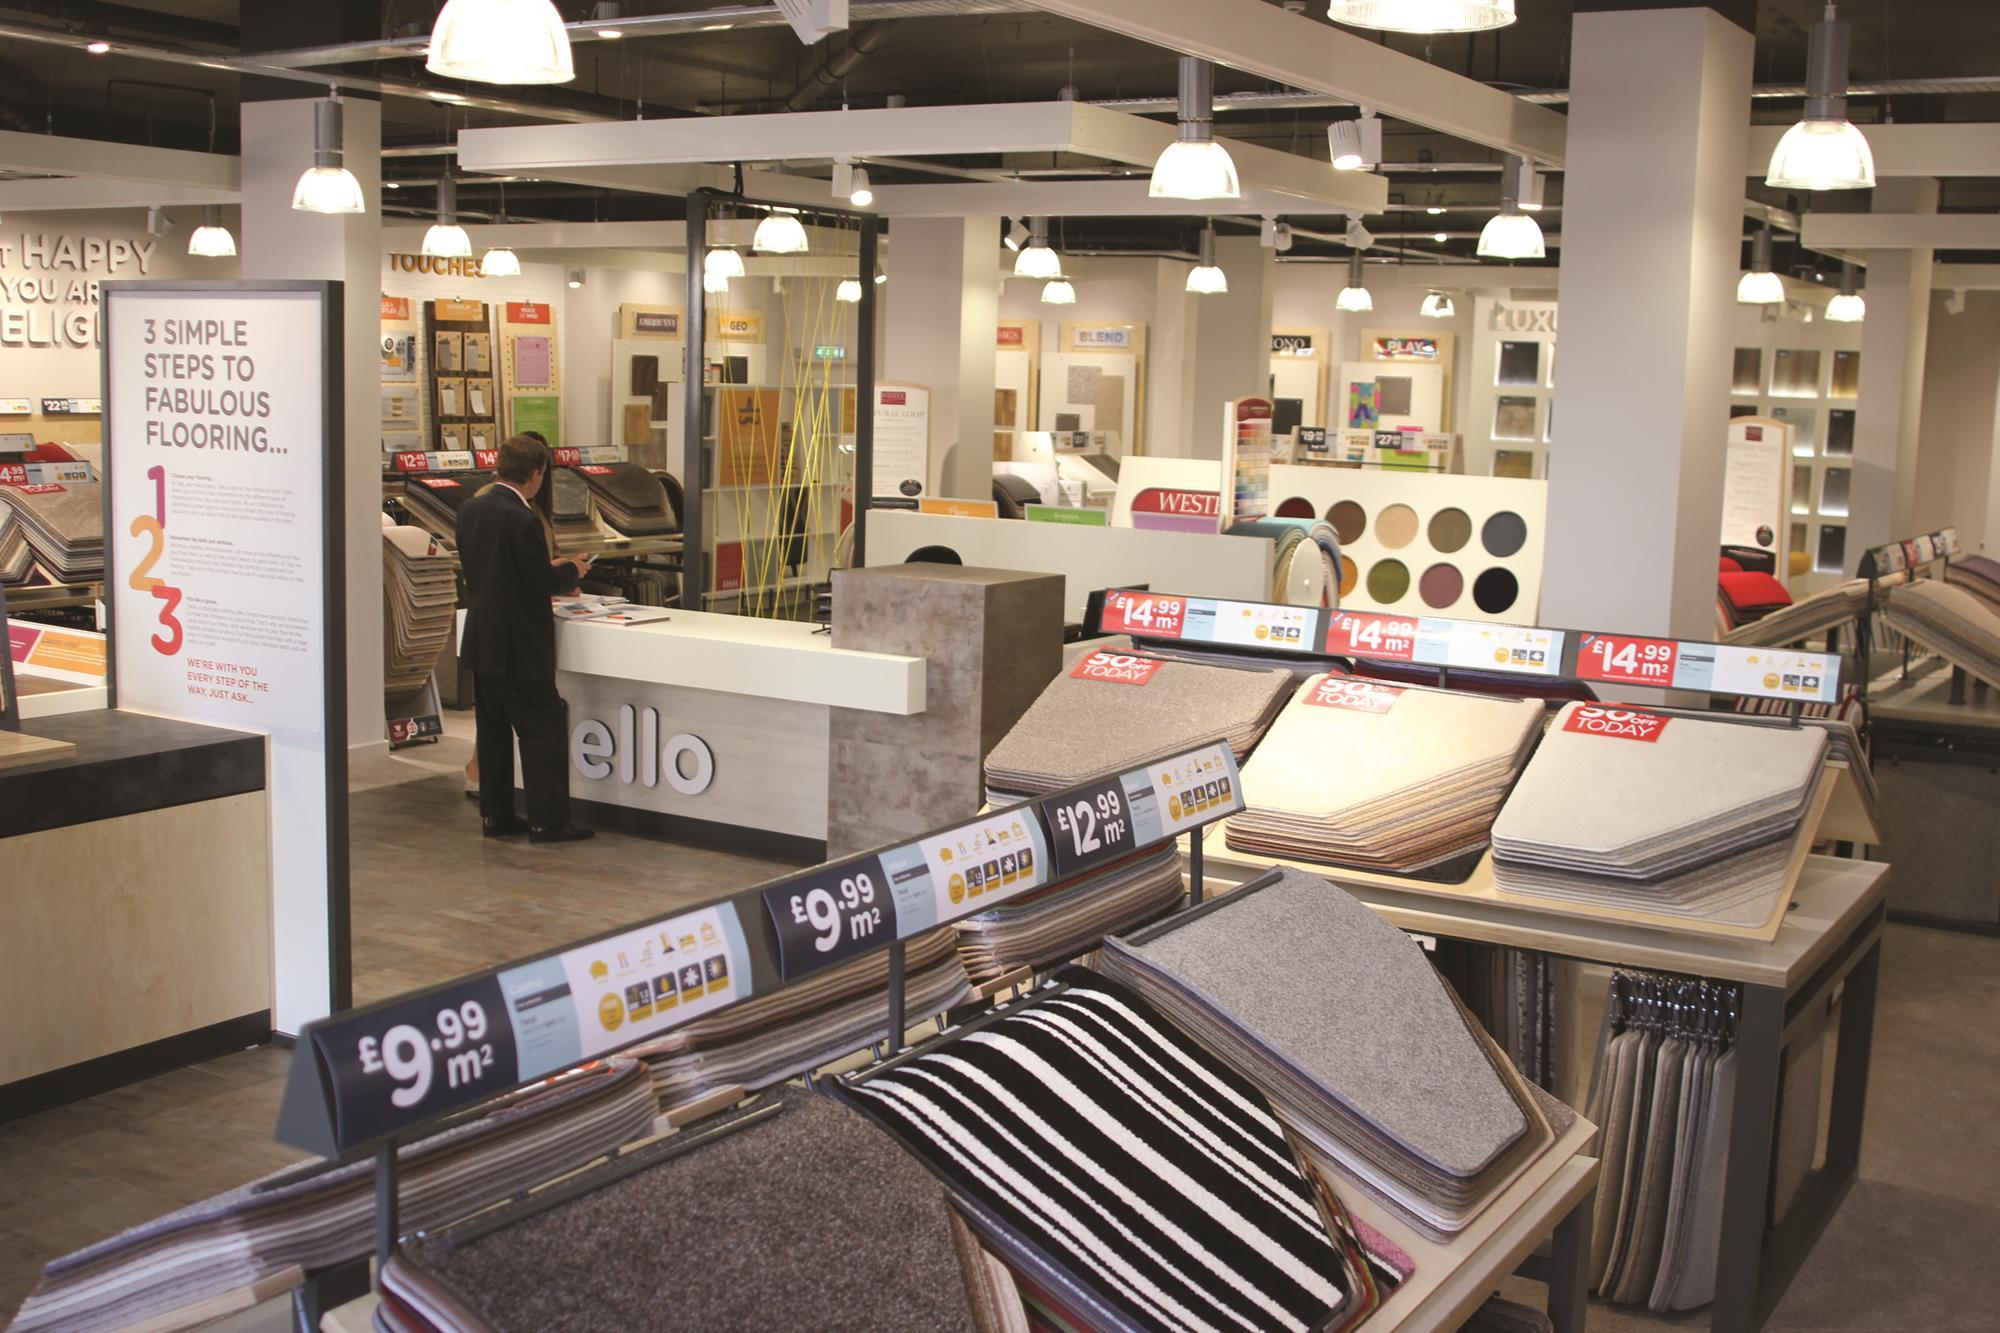 Floor covering stores near me 60 images convict hill for Flooring places near me